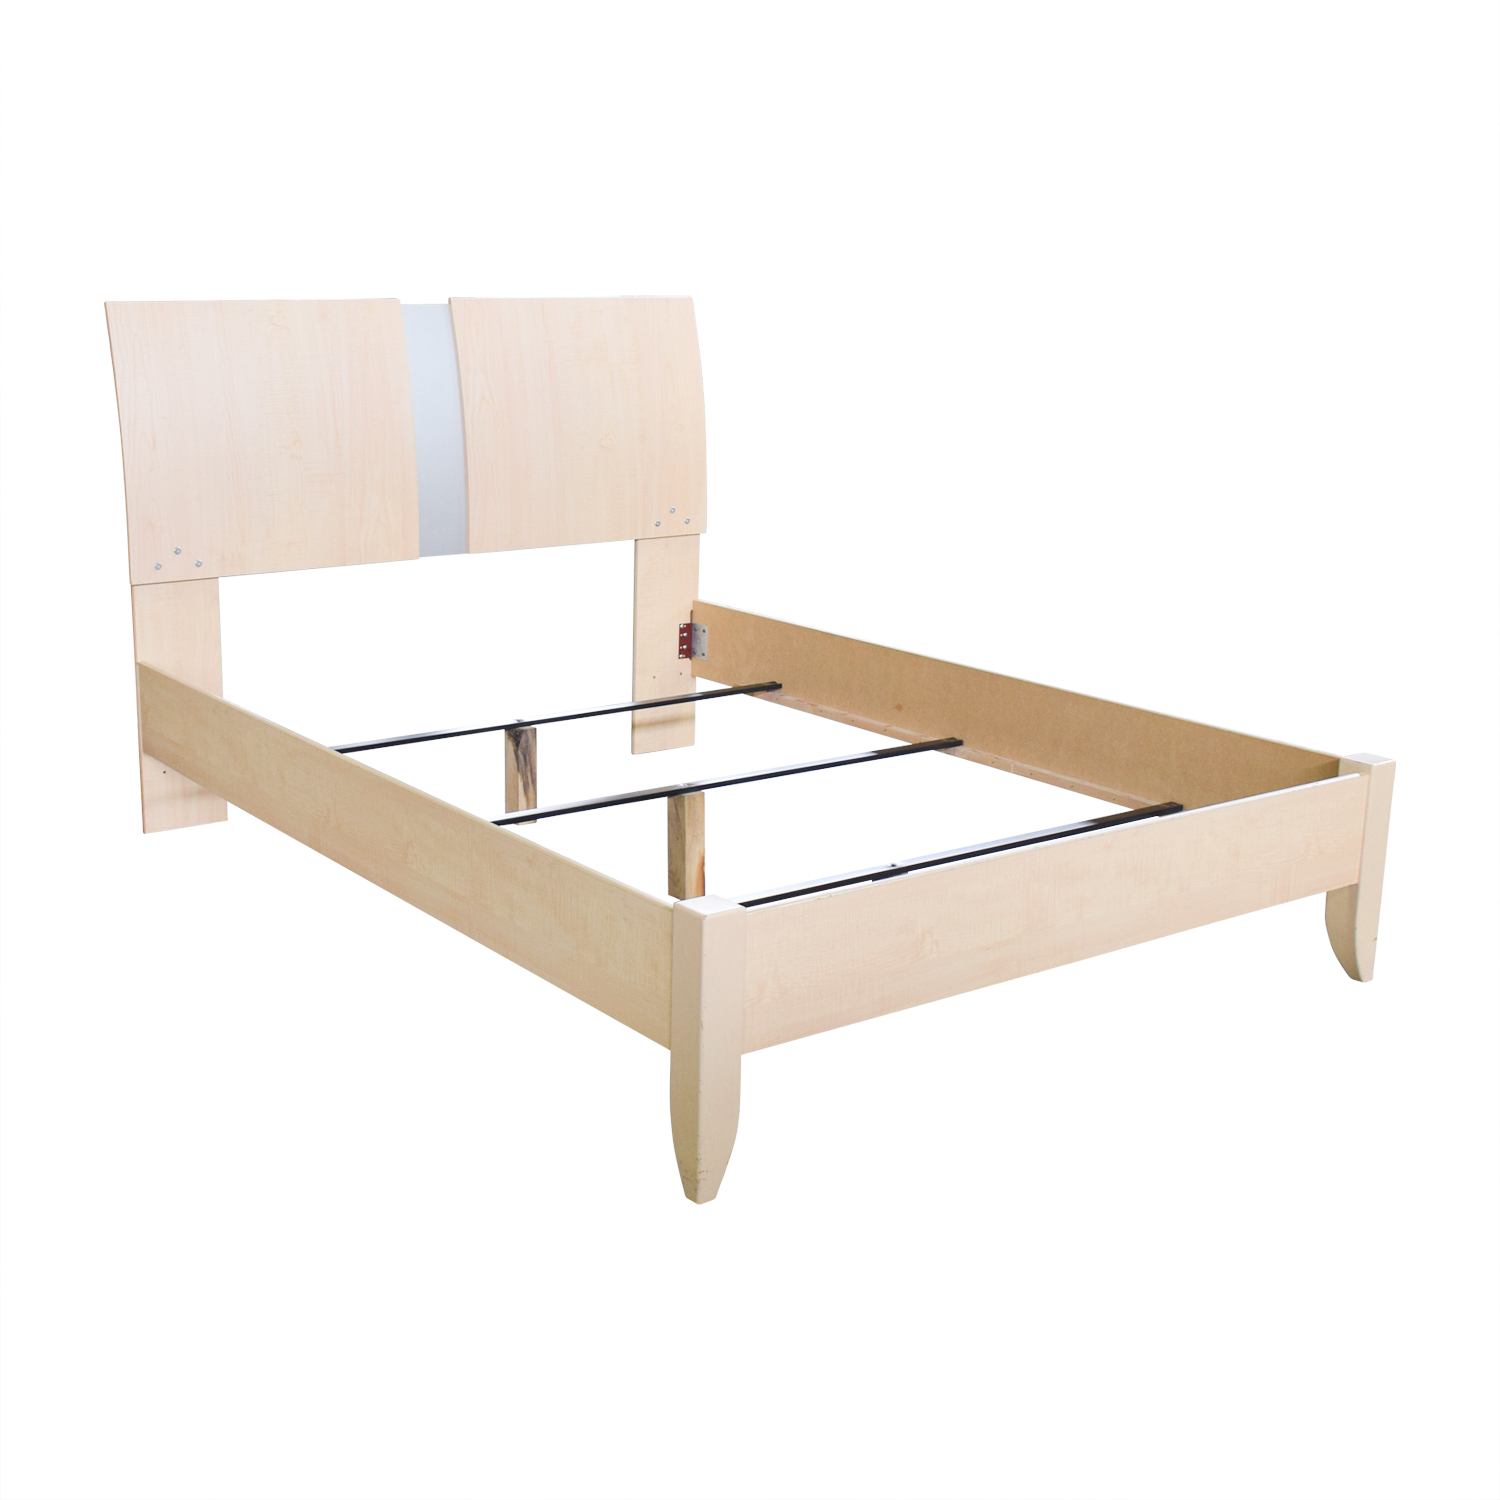 Ashley Furniture Ashley Furniture Natural Wood and Chrome Queen Bed Frame oak